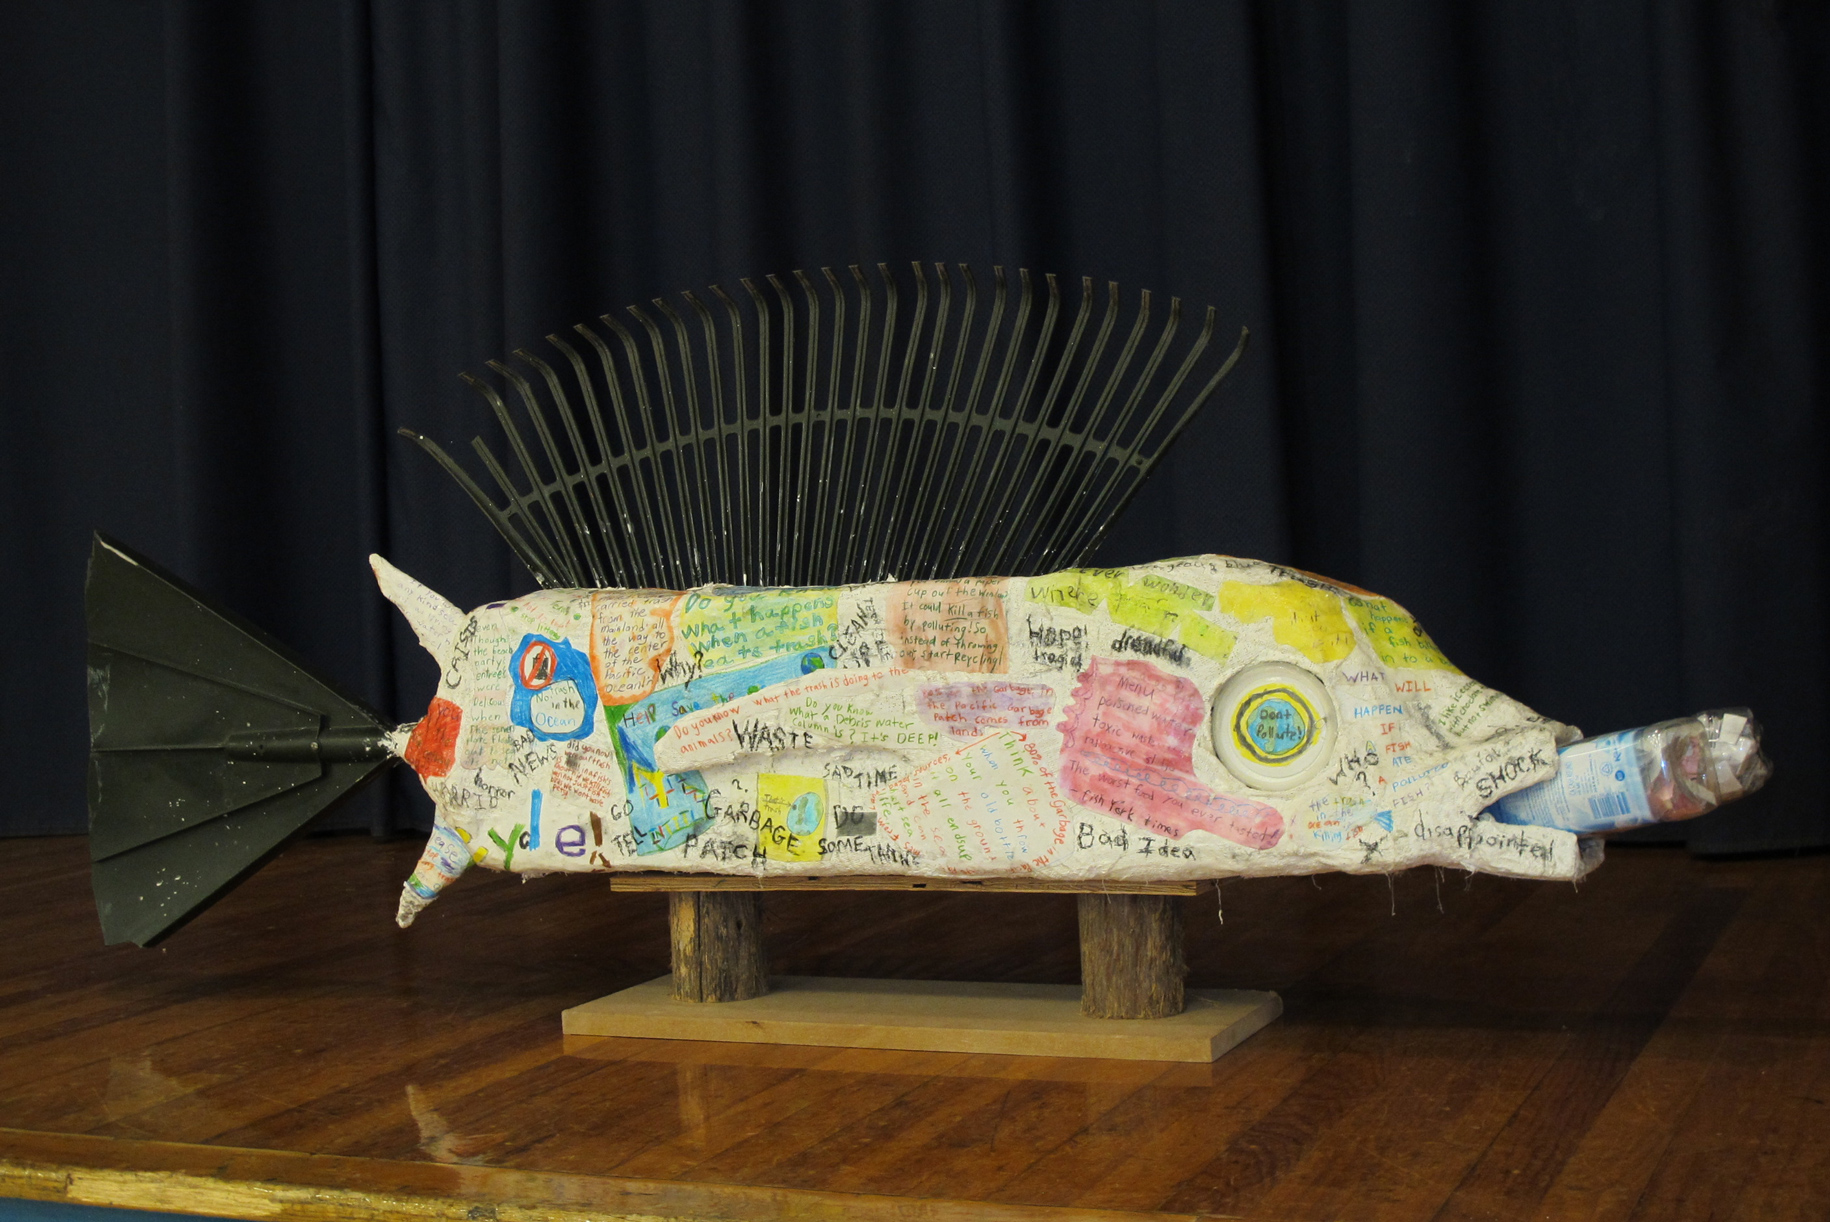 A four-foot long fish sculpture has fins and tail made with recycled rakes. <div class='credit'><strong>Credit:</strong> A four-foot long fish sculpture has fins and tail made with recycled rakes. </div>